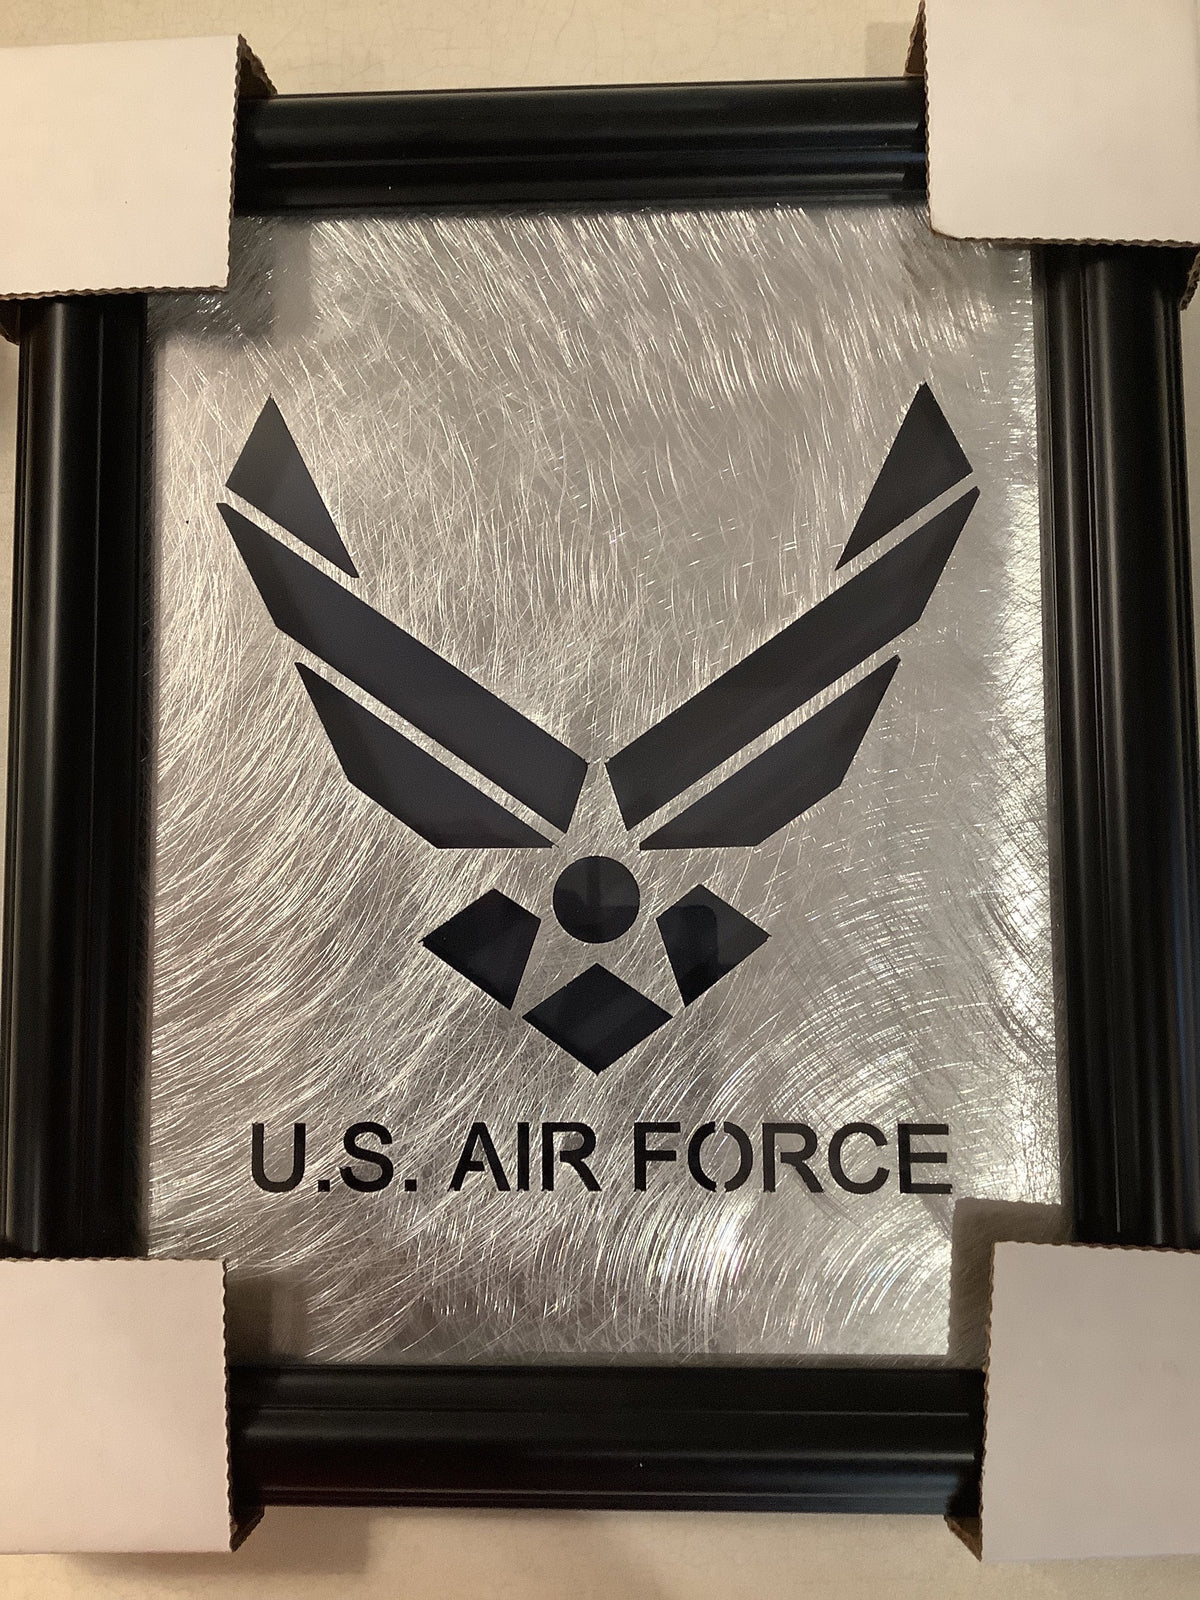 US Air Force framed metal decal